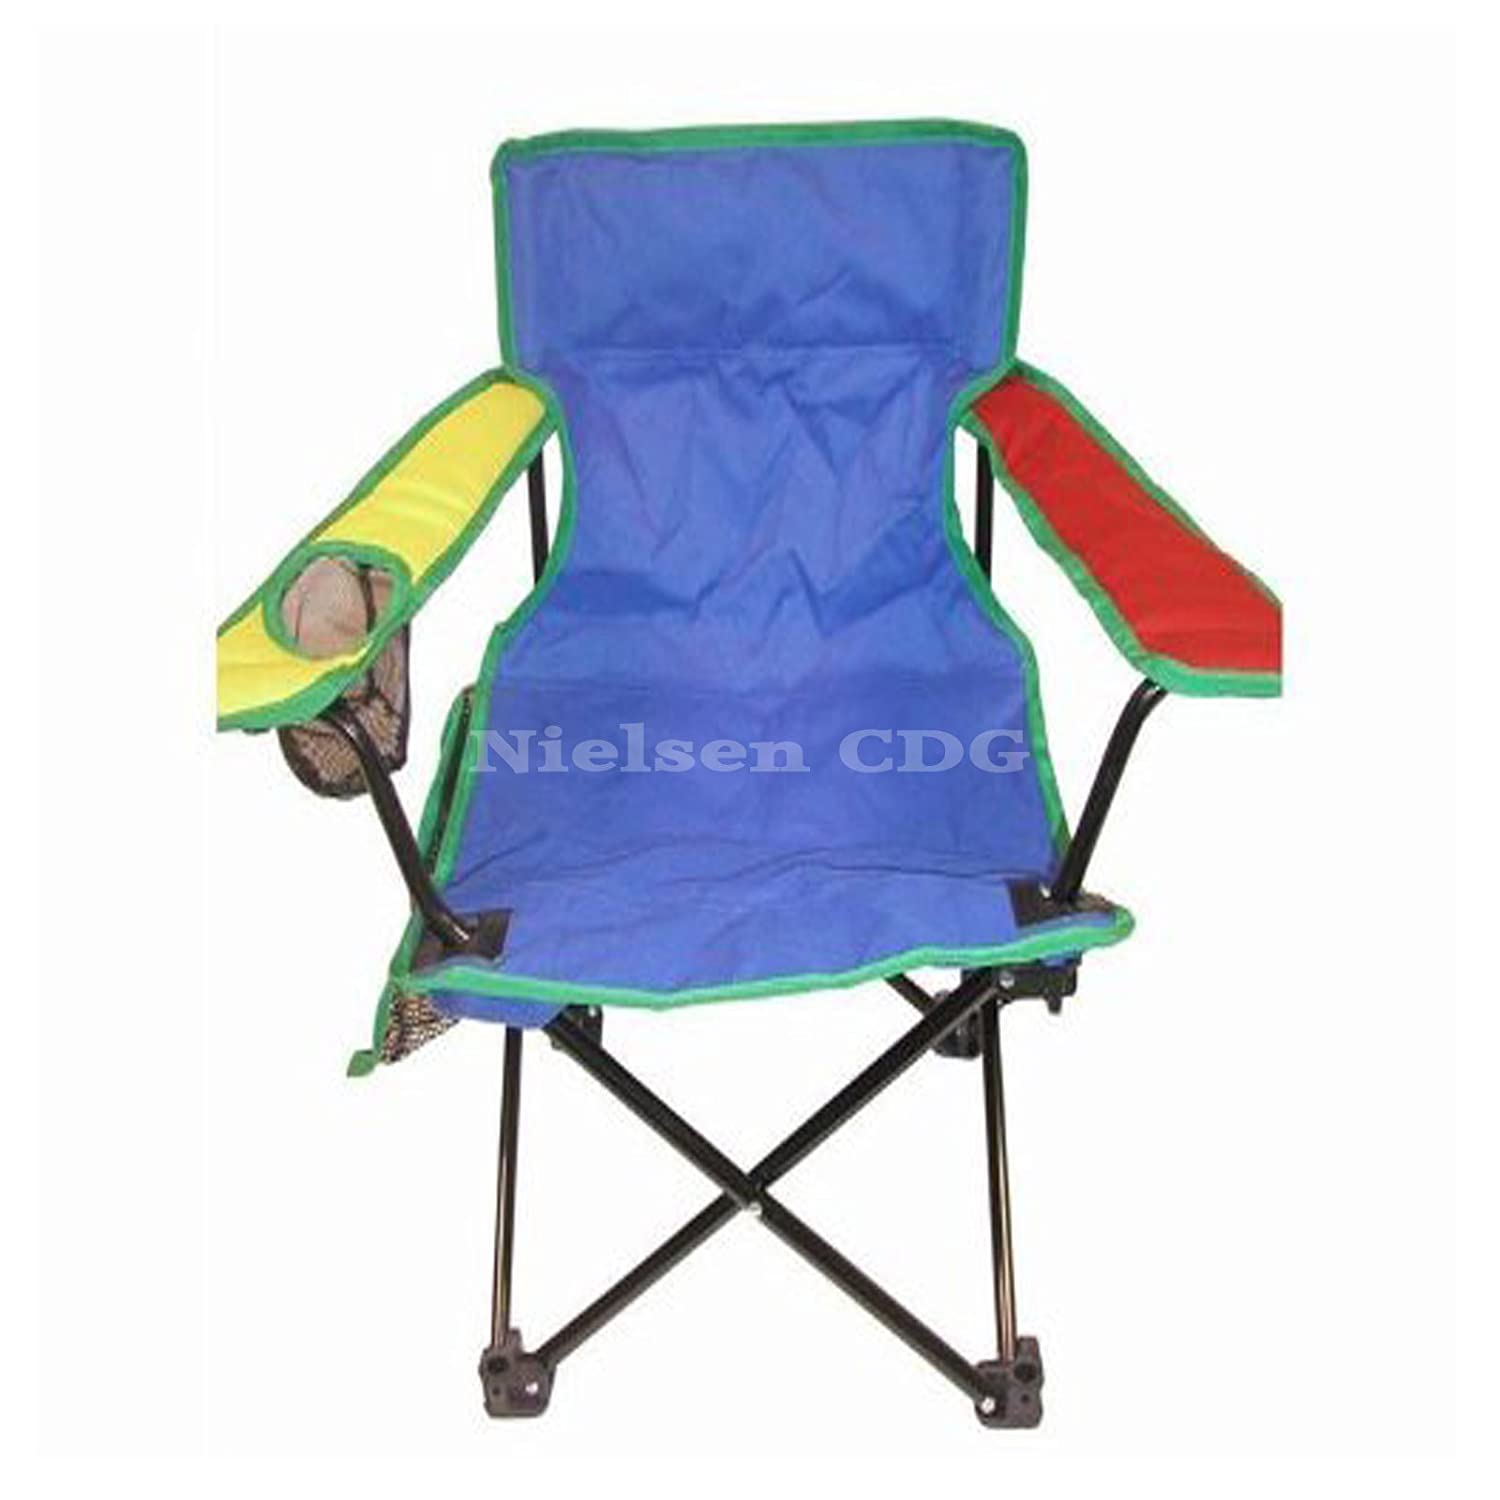 Child s Folding Camping Chair for kids multicoloured Amazon